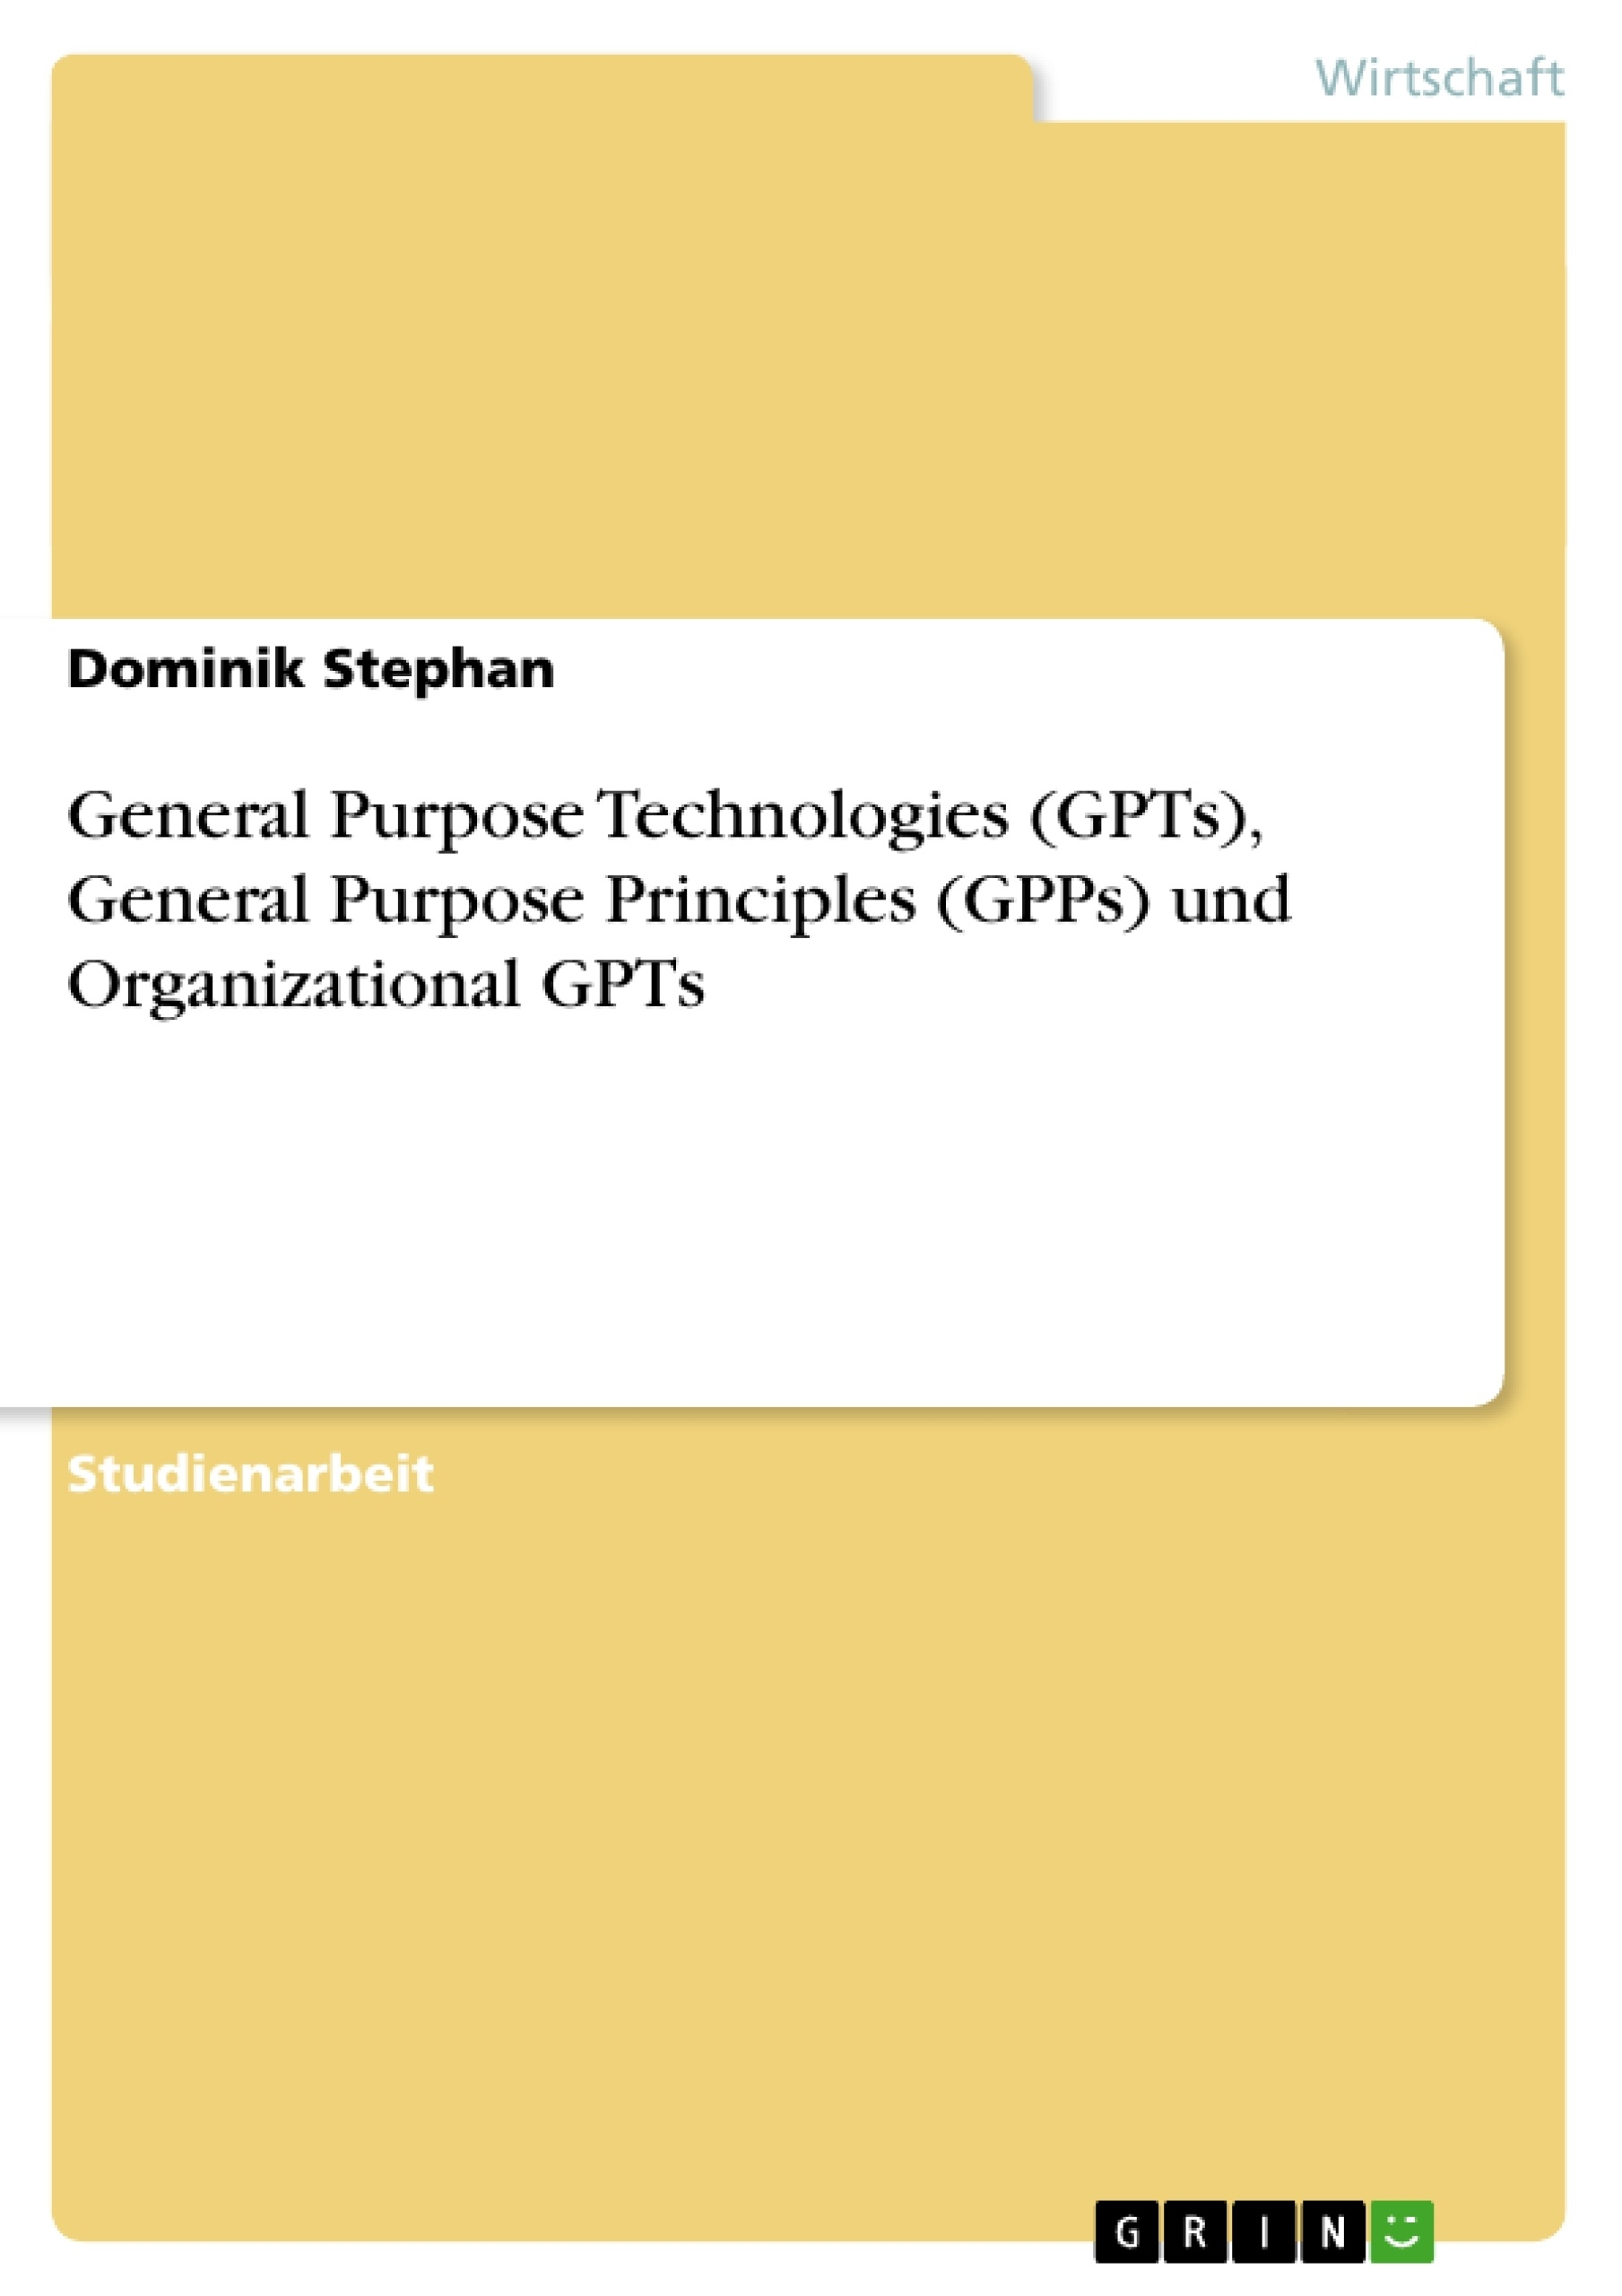 Titel: General Purpose Technologies (GPTs), General Purpose Principles (GPPs) und Organizational GPTs